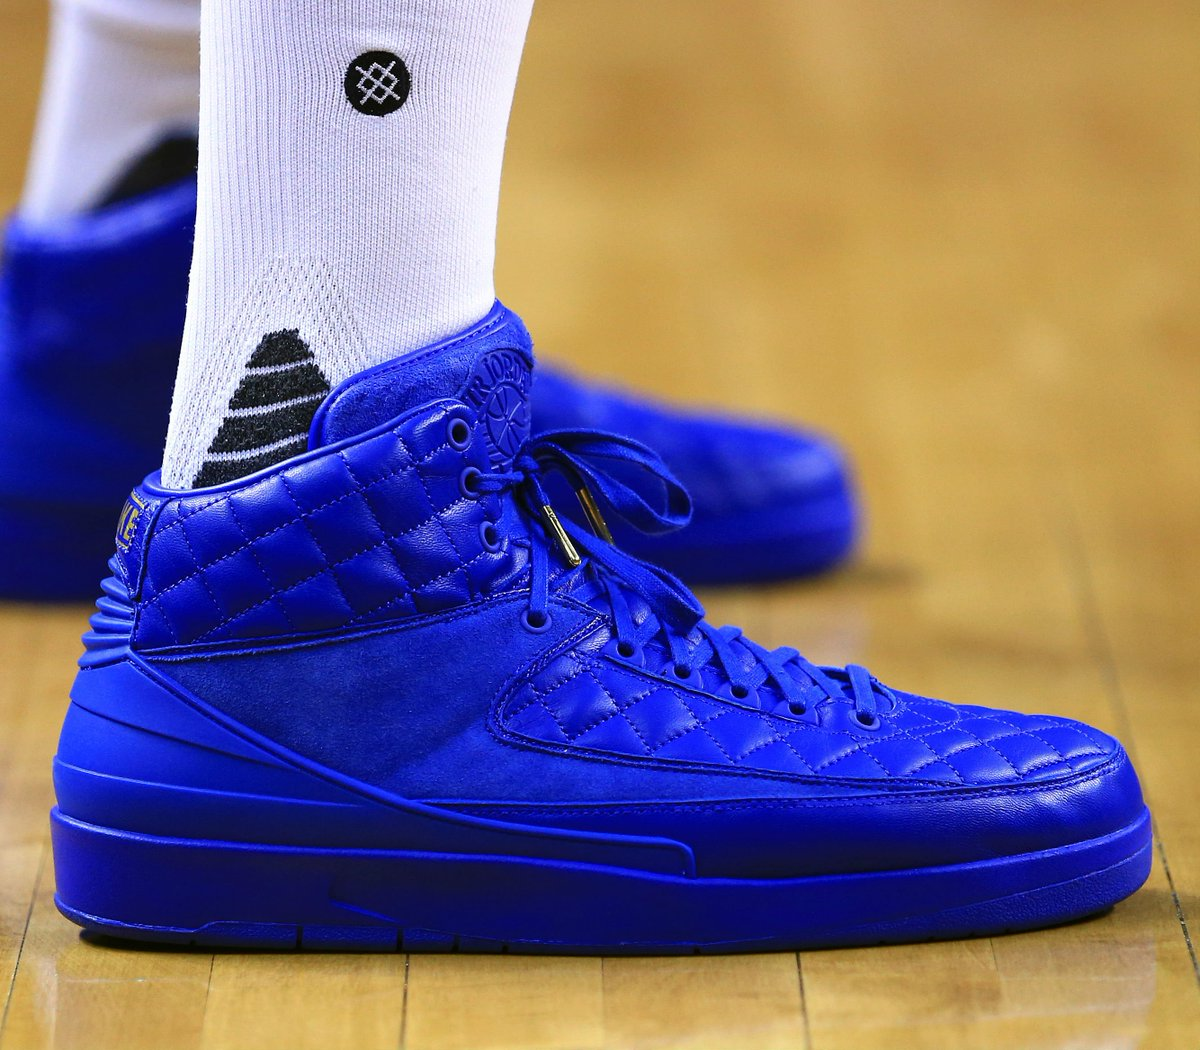 e8b9a083cd9 solewatch: p.j. tucker wearing the